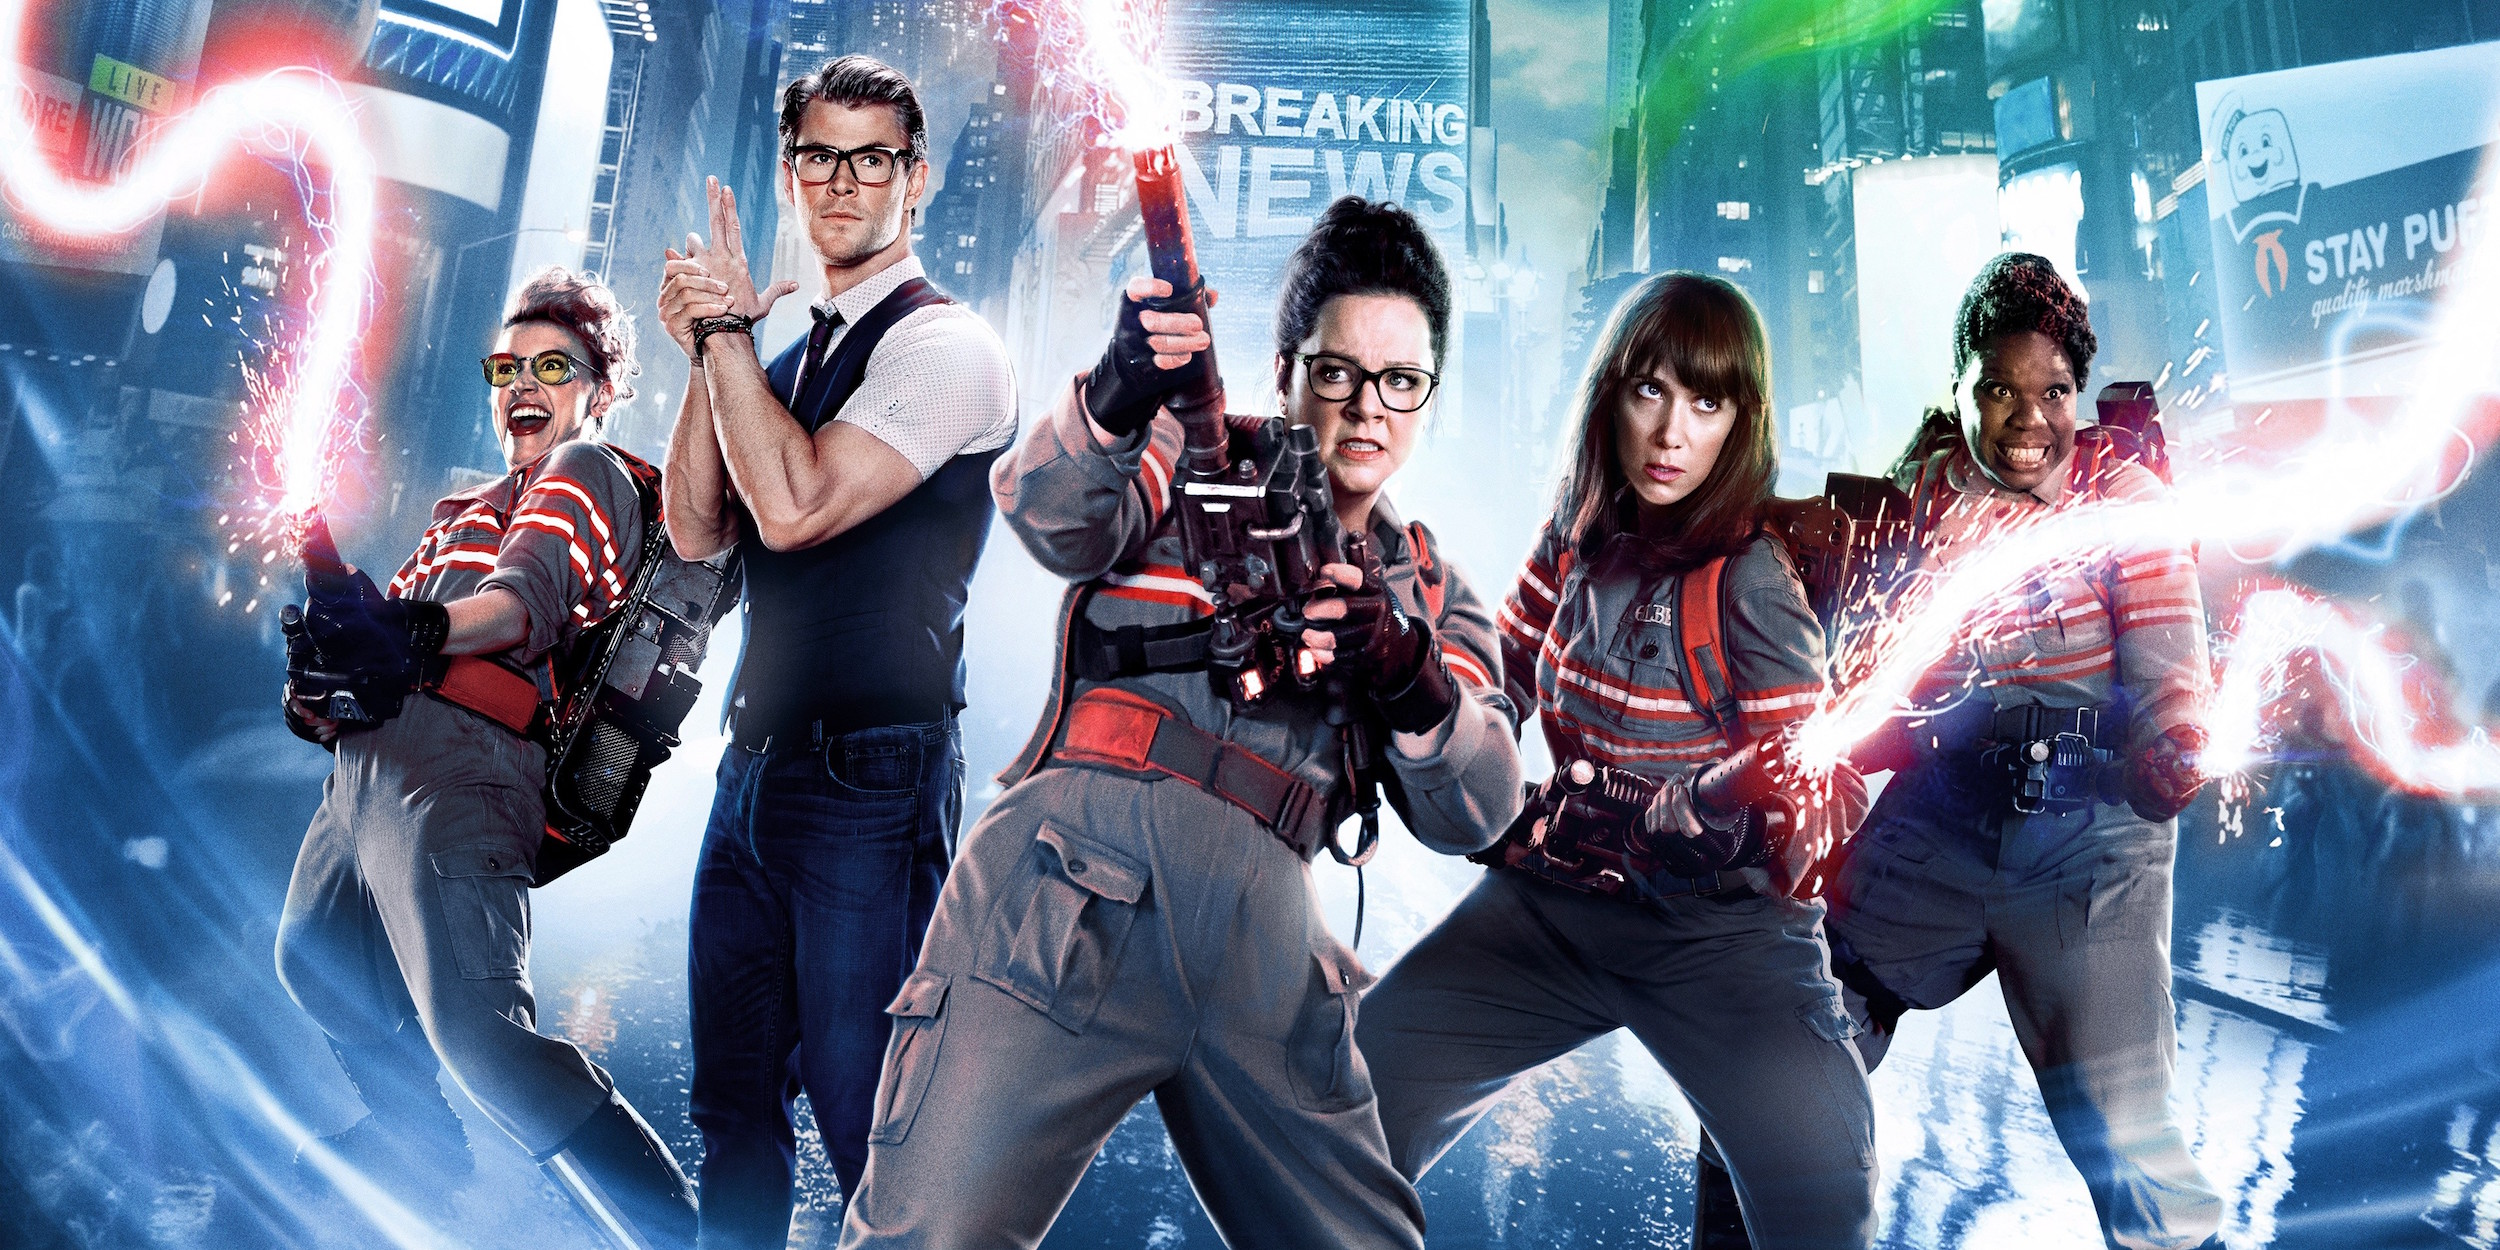 ghostbusters pn ana 6